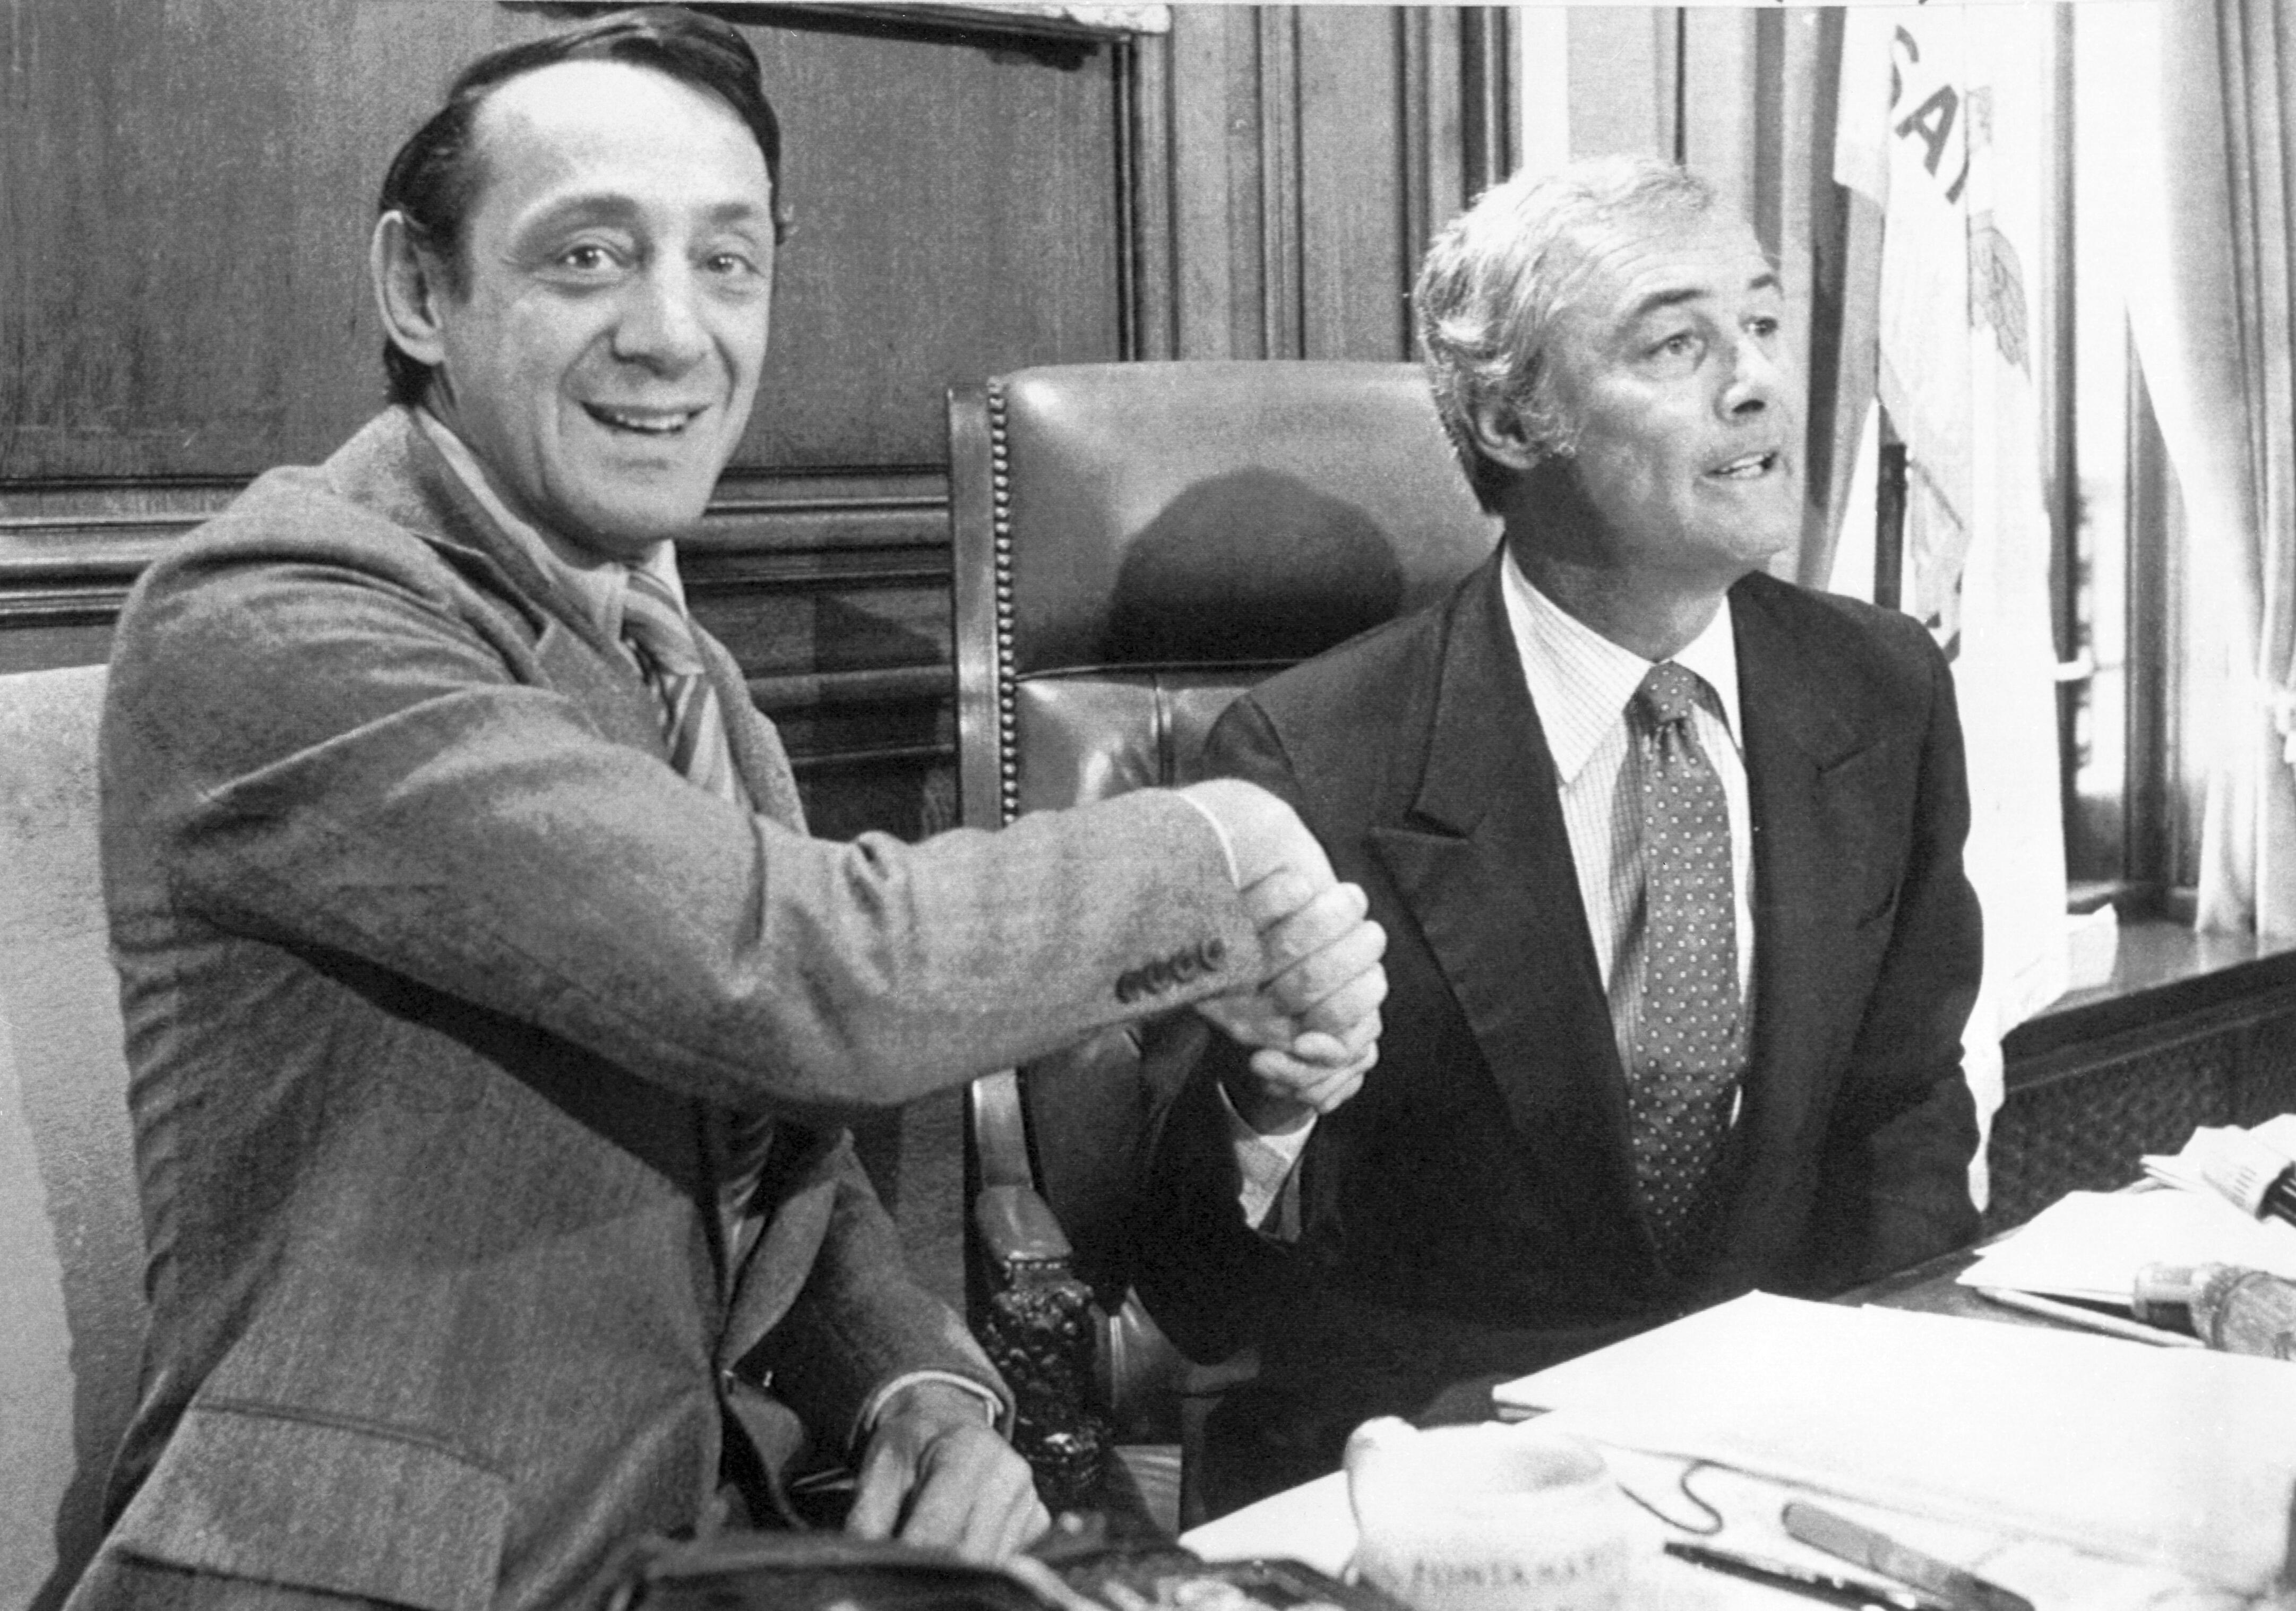 harvey-milk-and-goerge-moscone-getty-images